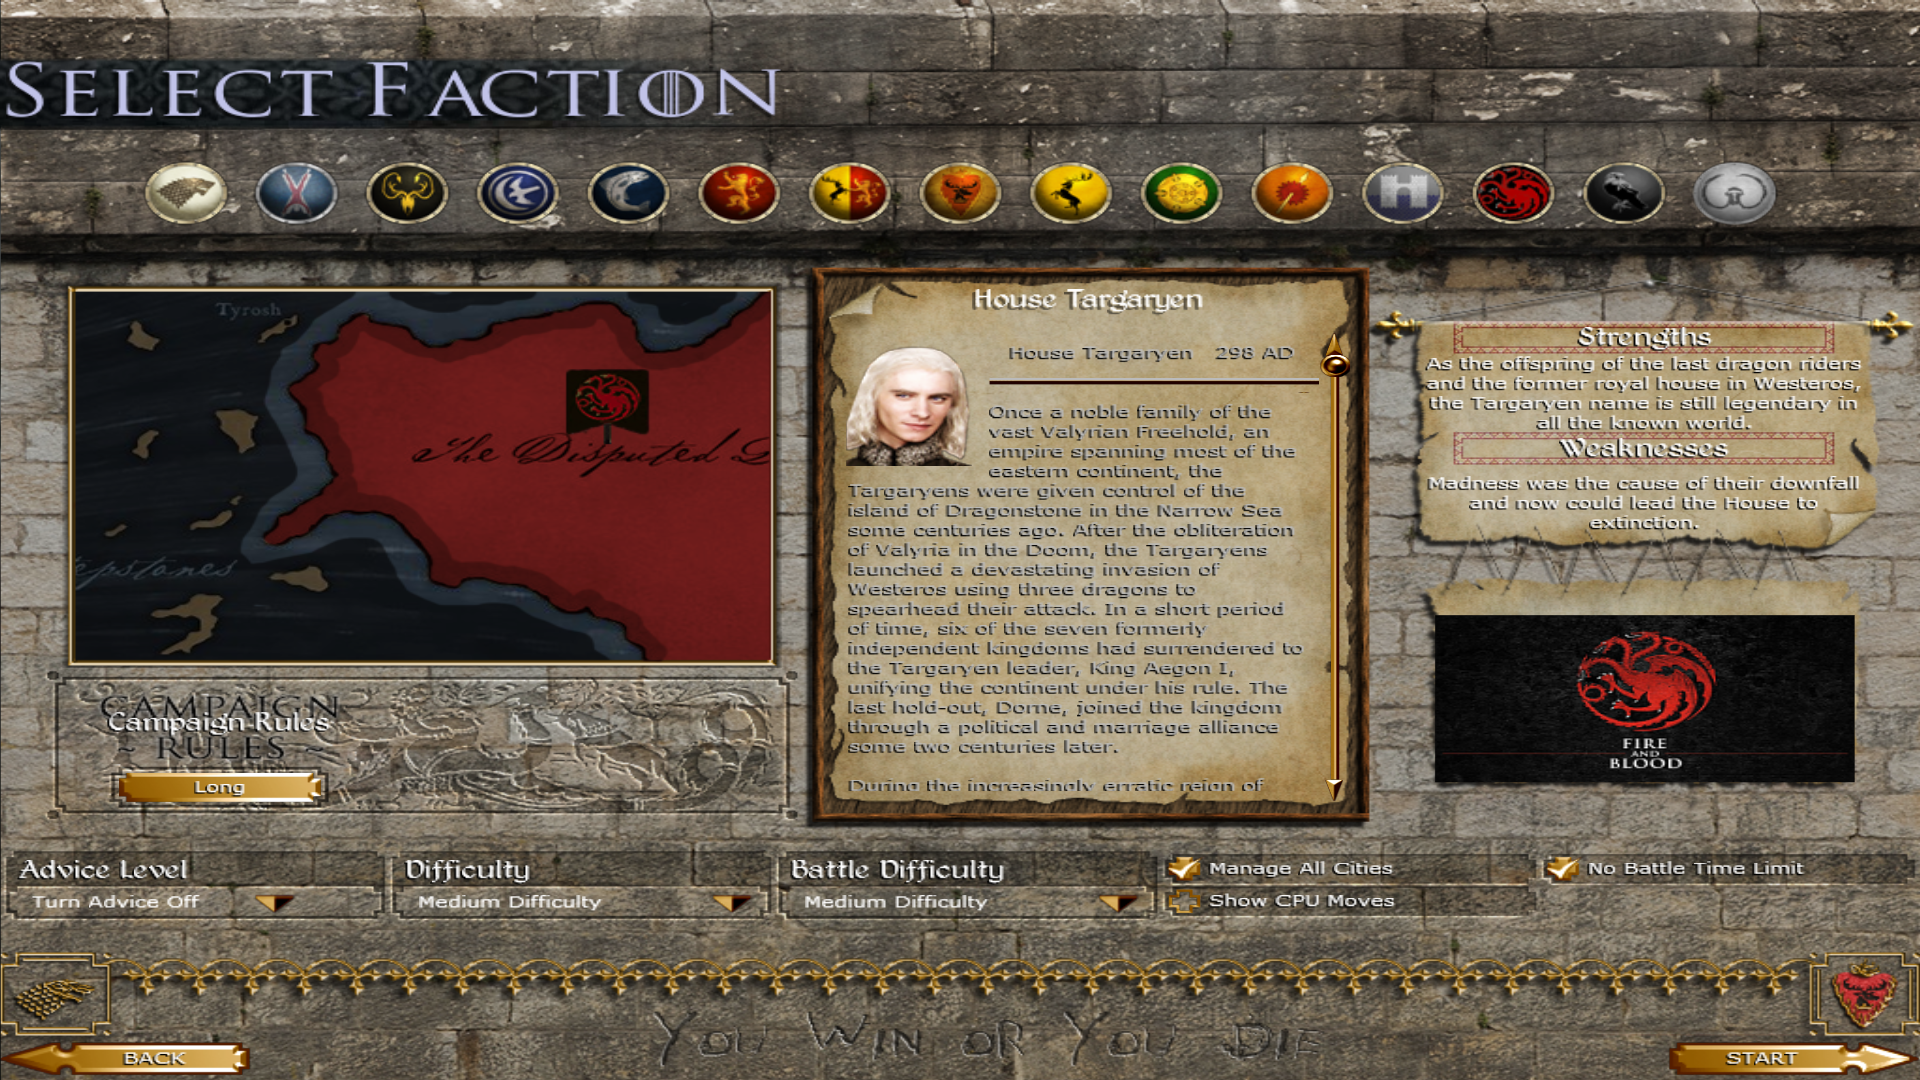 House Targaryen new selection screen!